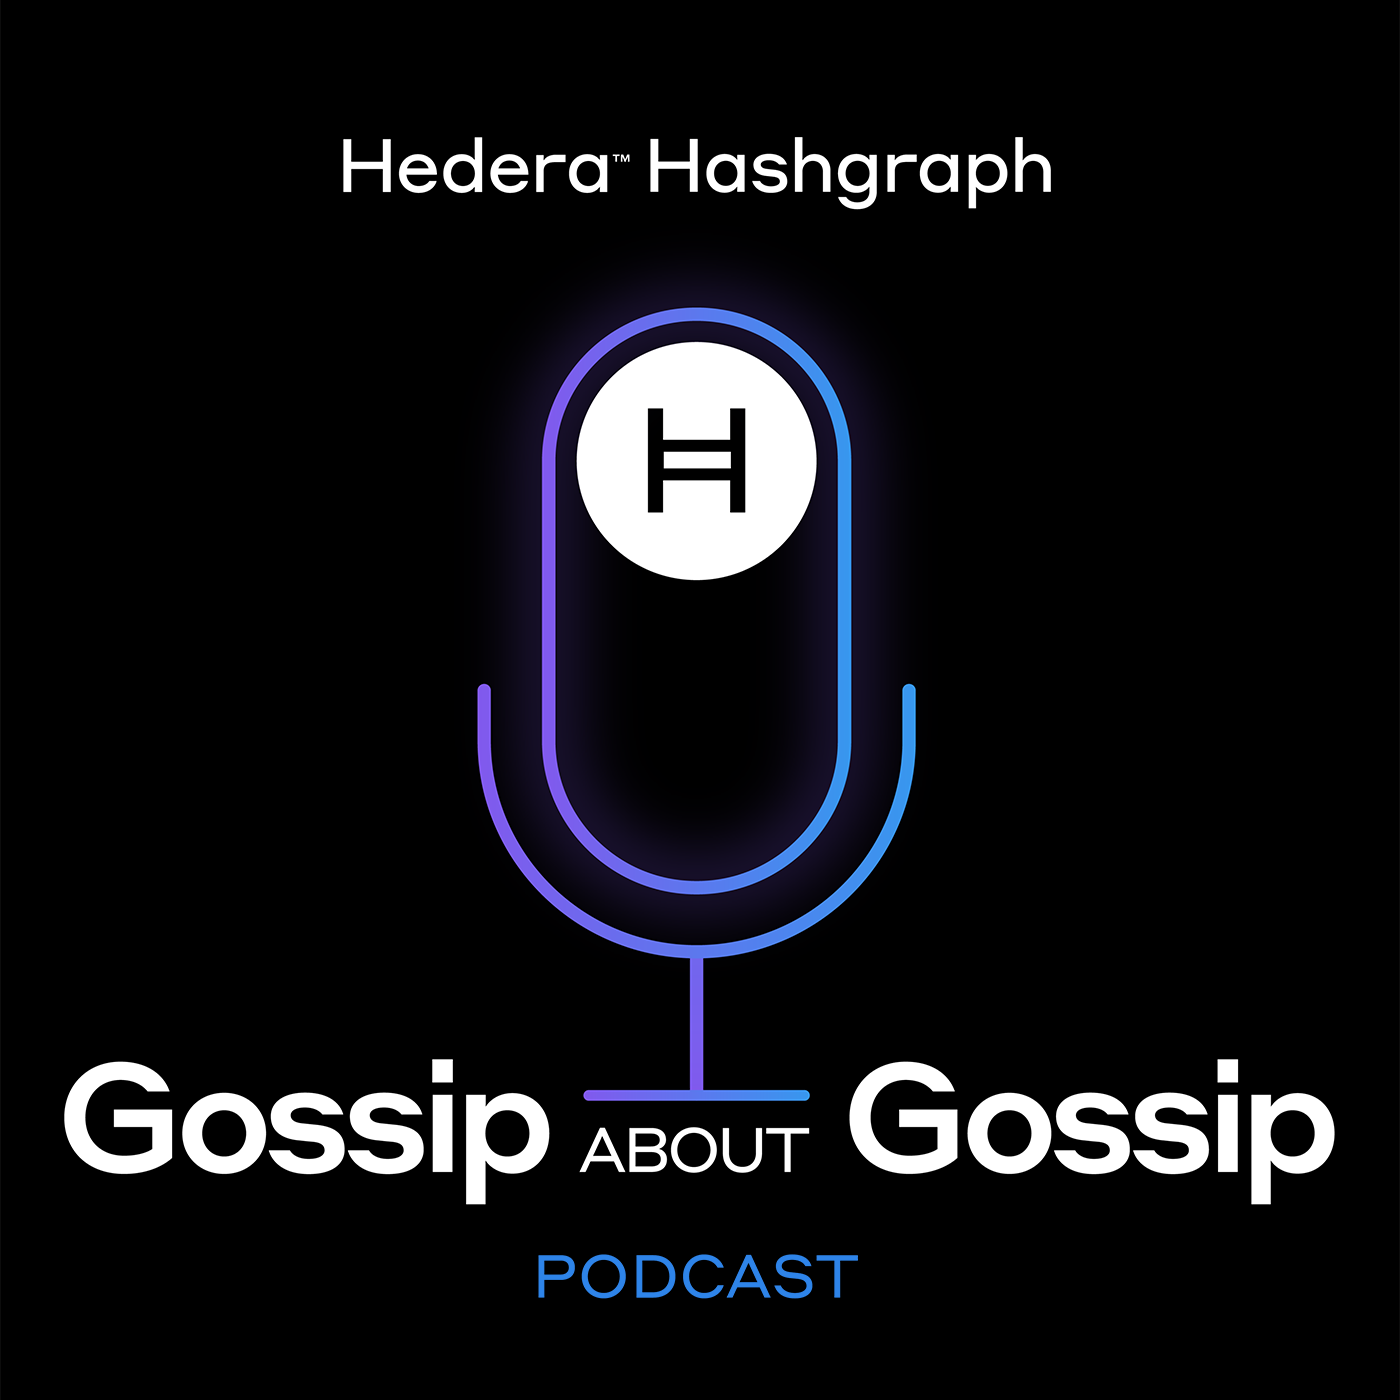 Hedera Hashgraph - Gossip About Gossip Podcast show art